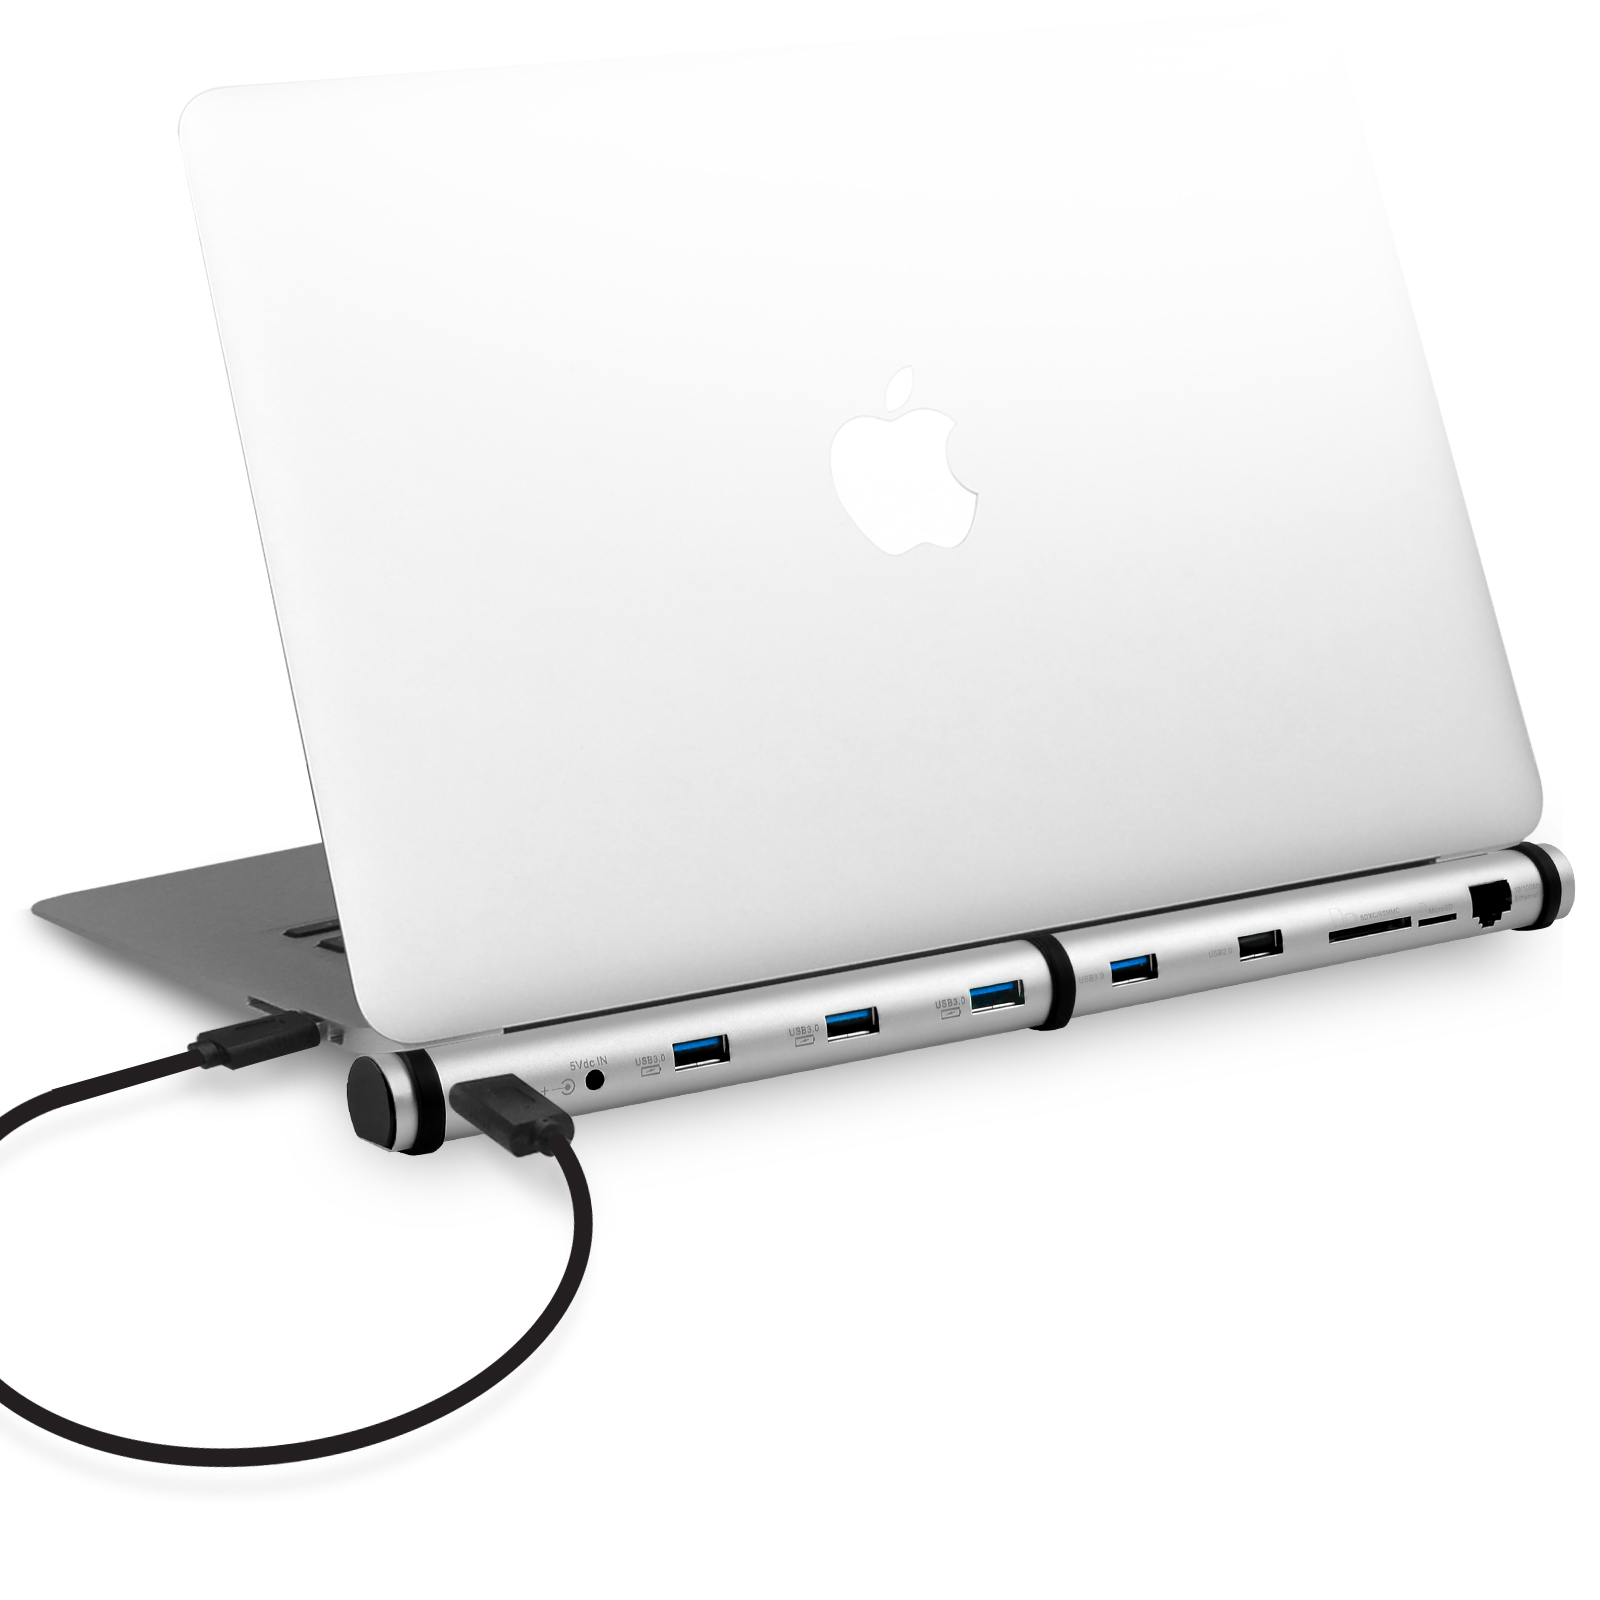 mBeat M-Sleek Docking Station For Notebook and Macbook in Silver Aluminium Housing